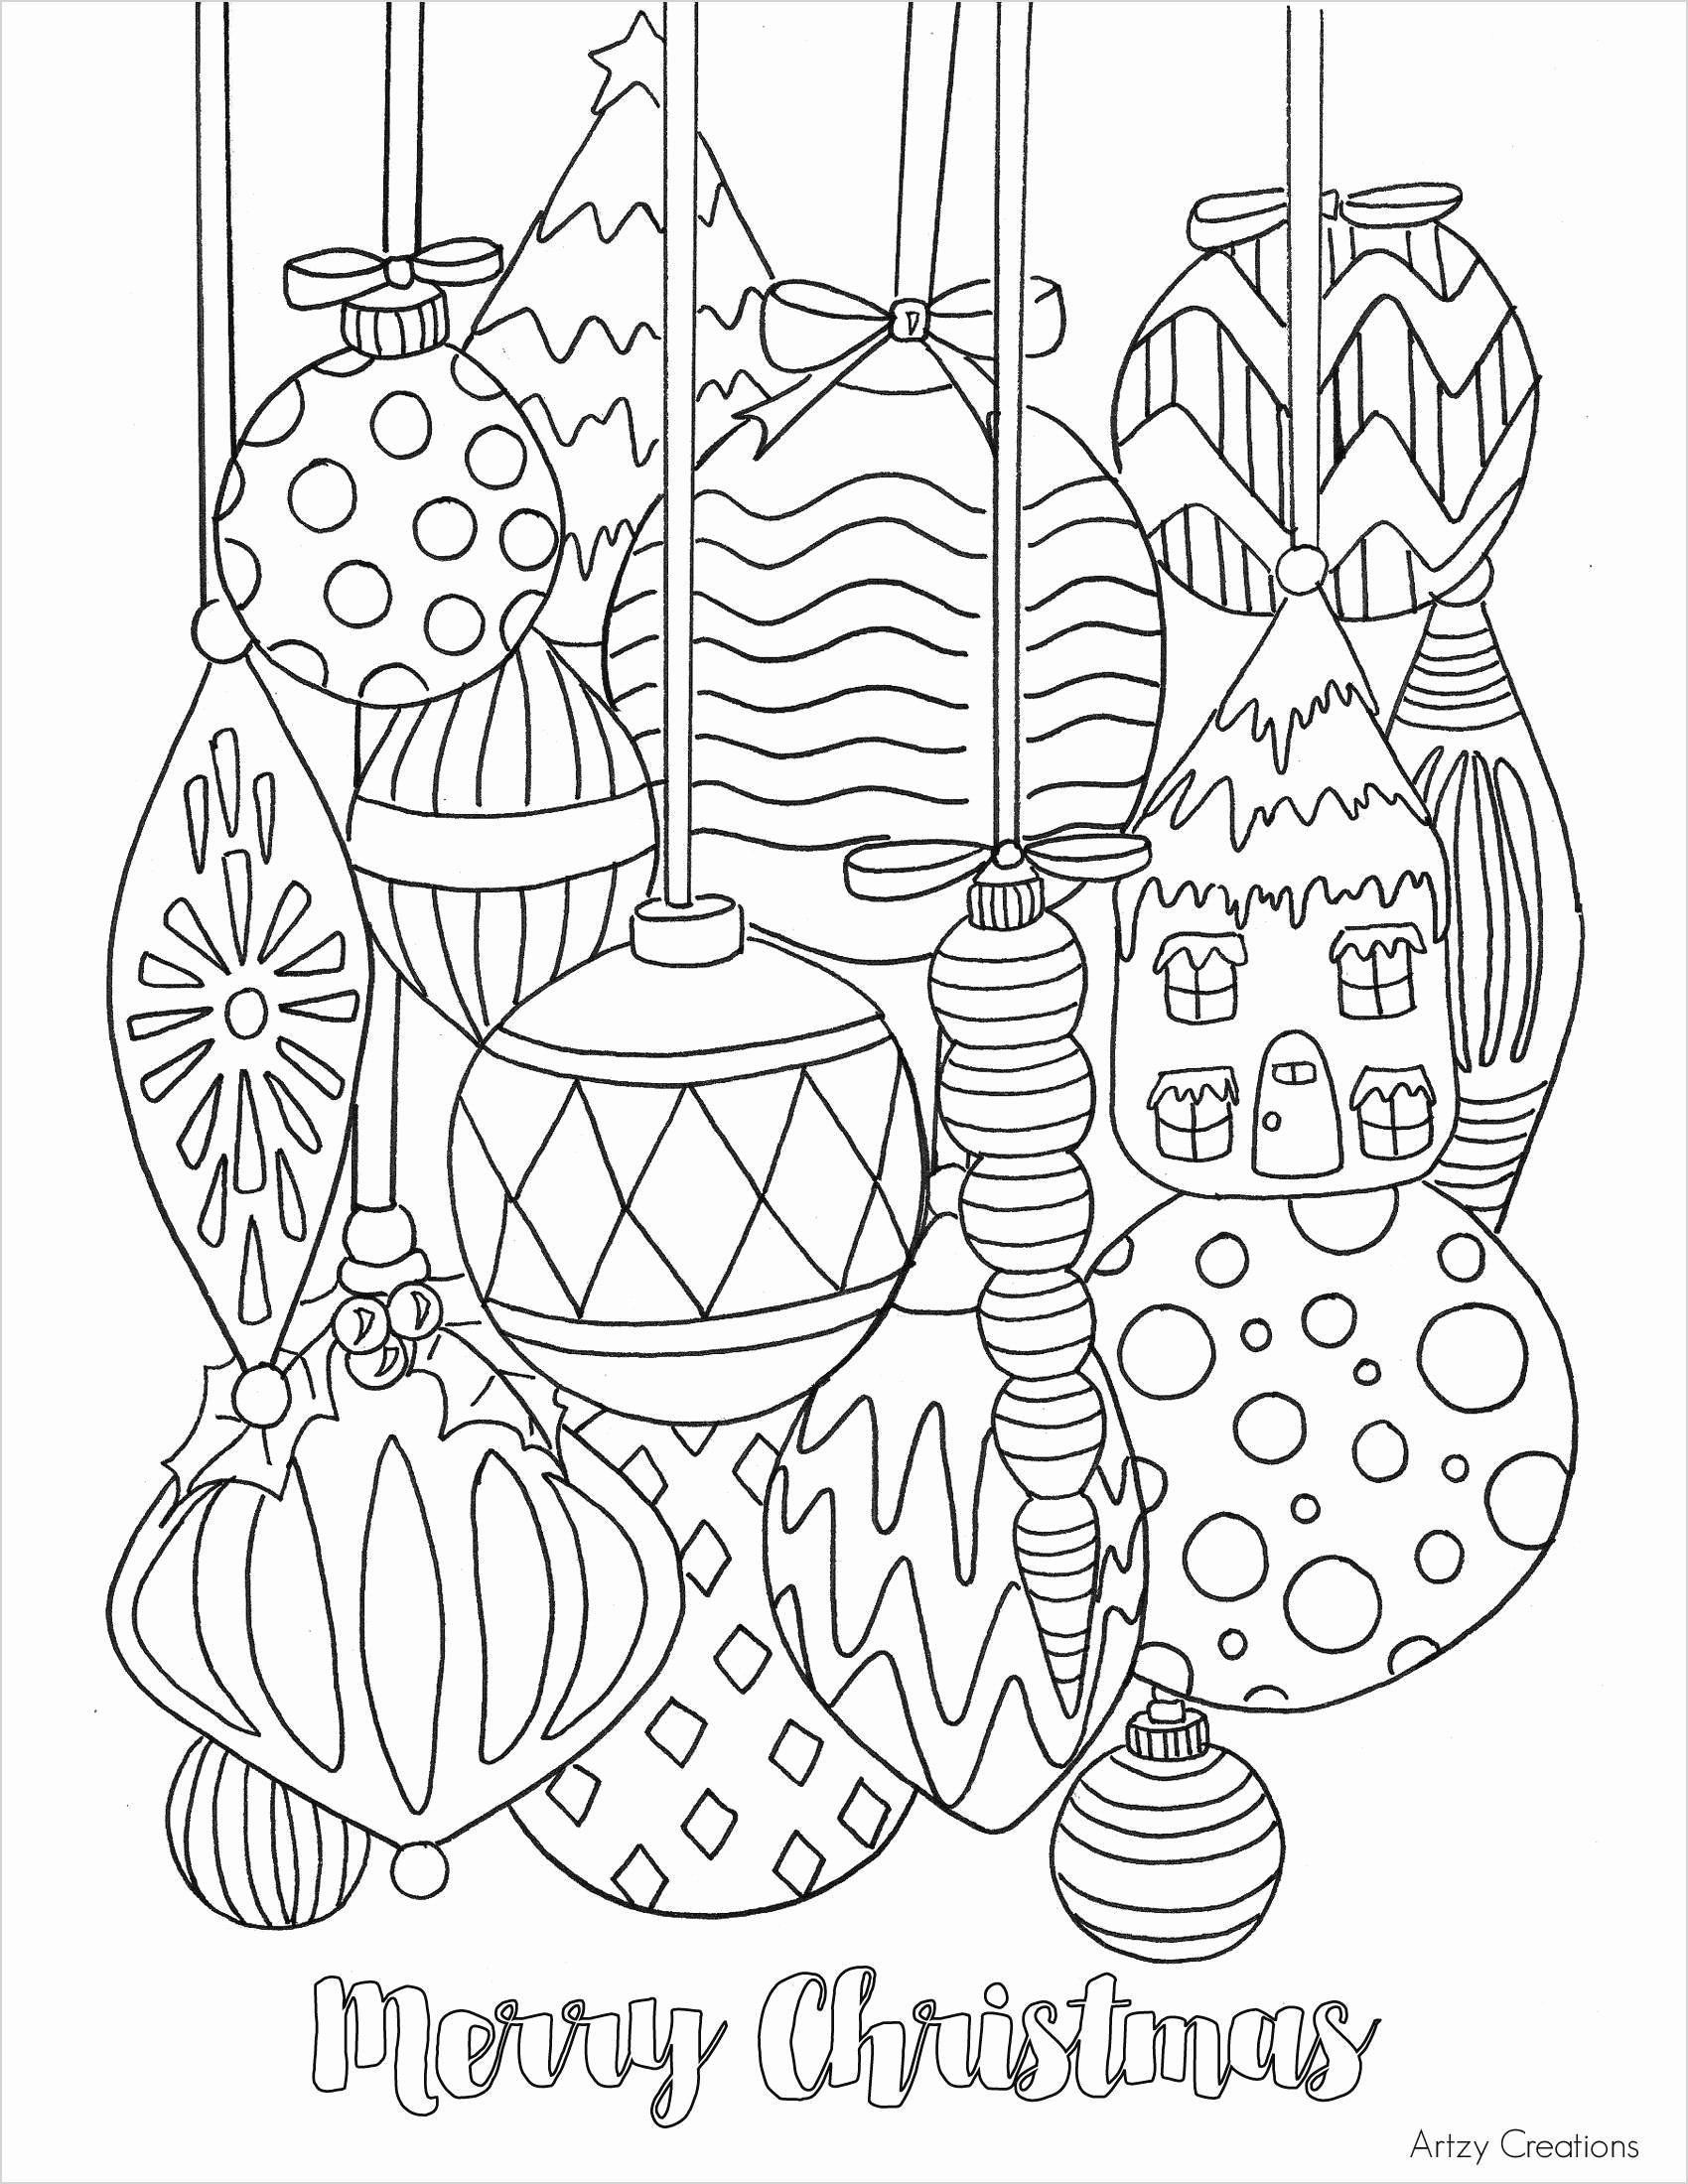 Coloring Pages Of Design Printables Best Of Best Free Coloring Pages Free Christmas Coloring Pages Printable Christmas Coloring Pages Christmas Coloring Books